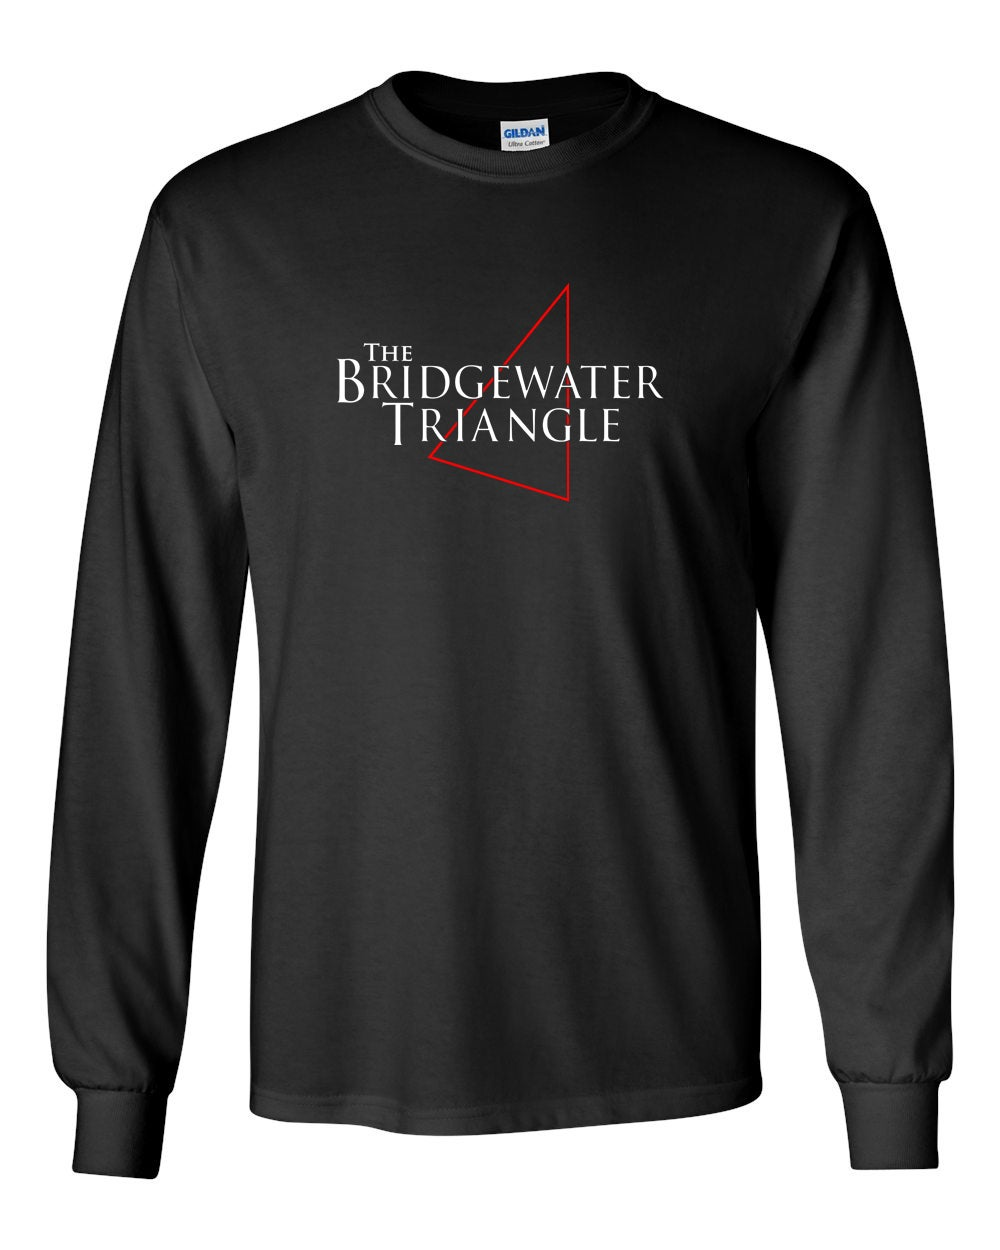 Image of BRIDGEWATER TRIANGLE BLACK T-SHIRT - LONG SLEEVE